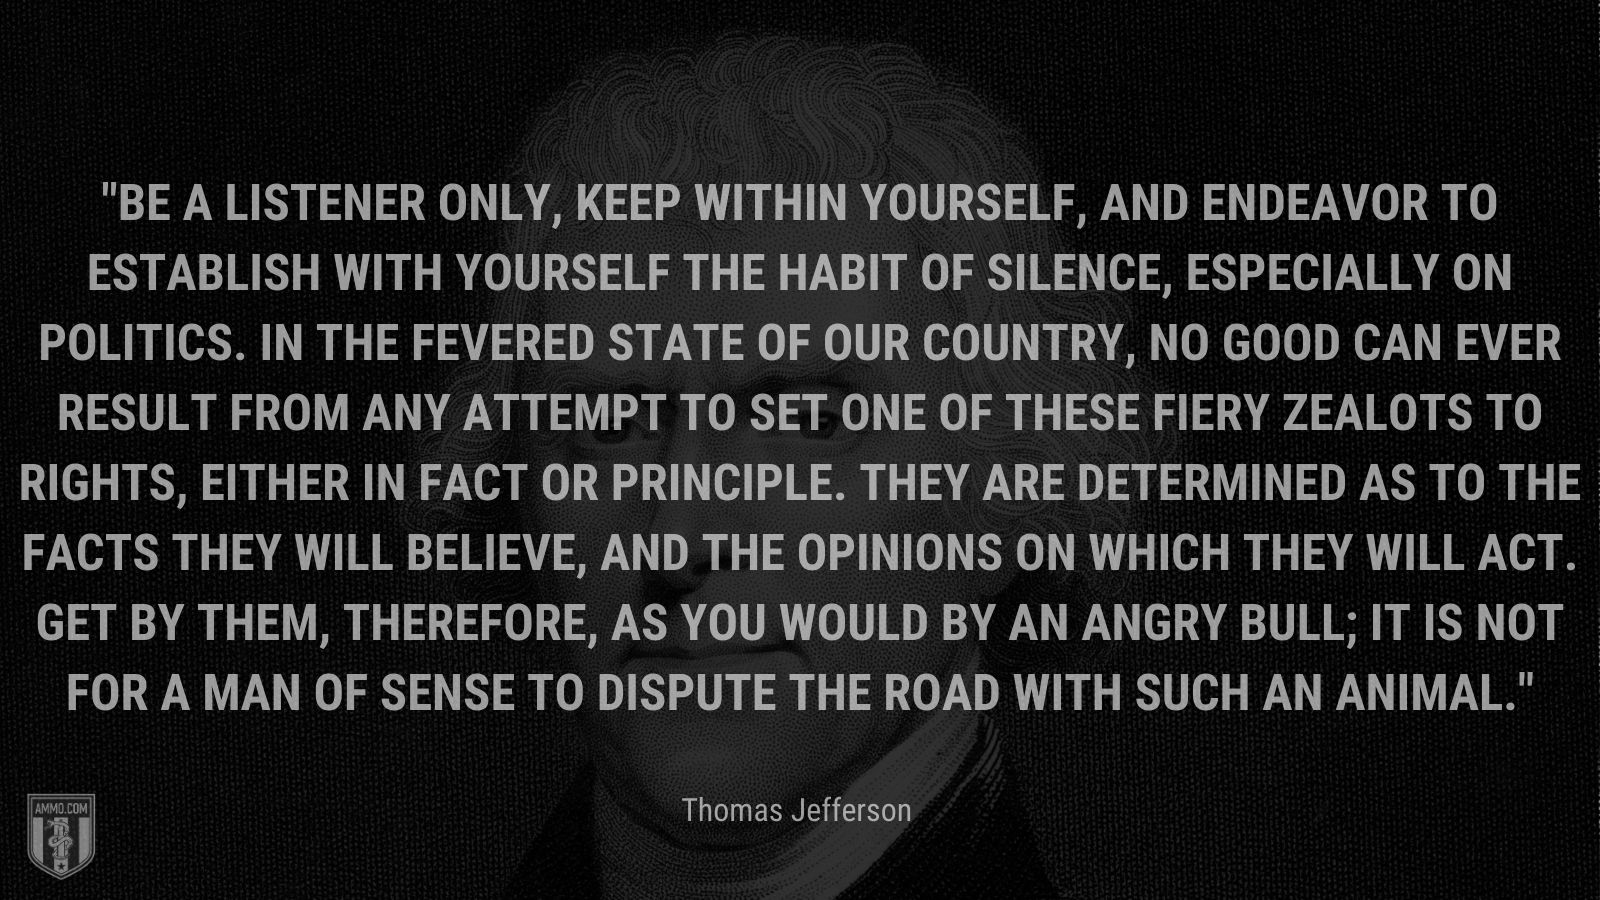 """""""Be a listener only, keep within yourself, and endeavor to establish with yourself the habit of silence, especially on politics. In the fevered state of our country, no good can ever result from any attempt to set one of these fiery zealots to rights, either in fact or principle. They are determined as to the facts they will believe, and the opinions on which they will act. Get by them, therefore, as you would by an angry bull; it is not for a man of sense to dispute the road with such an animal."""" - Thomas Jefferson"""